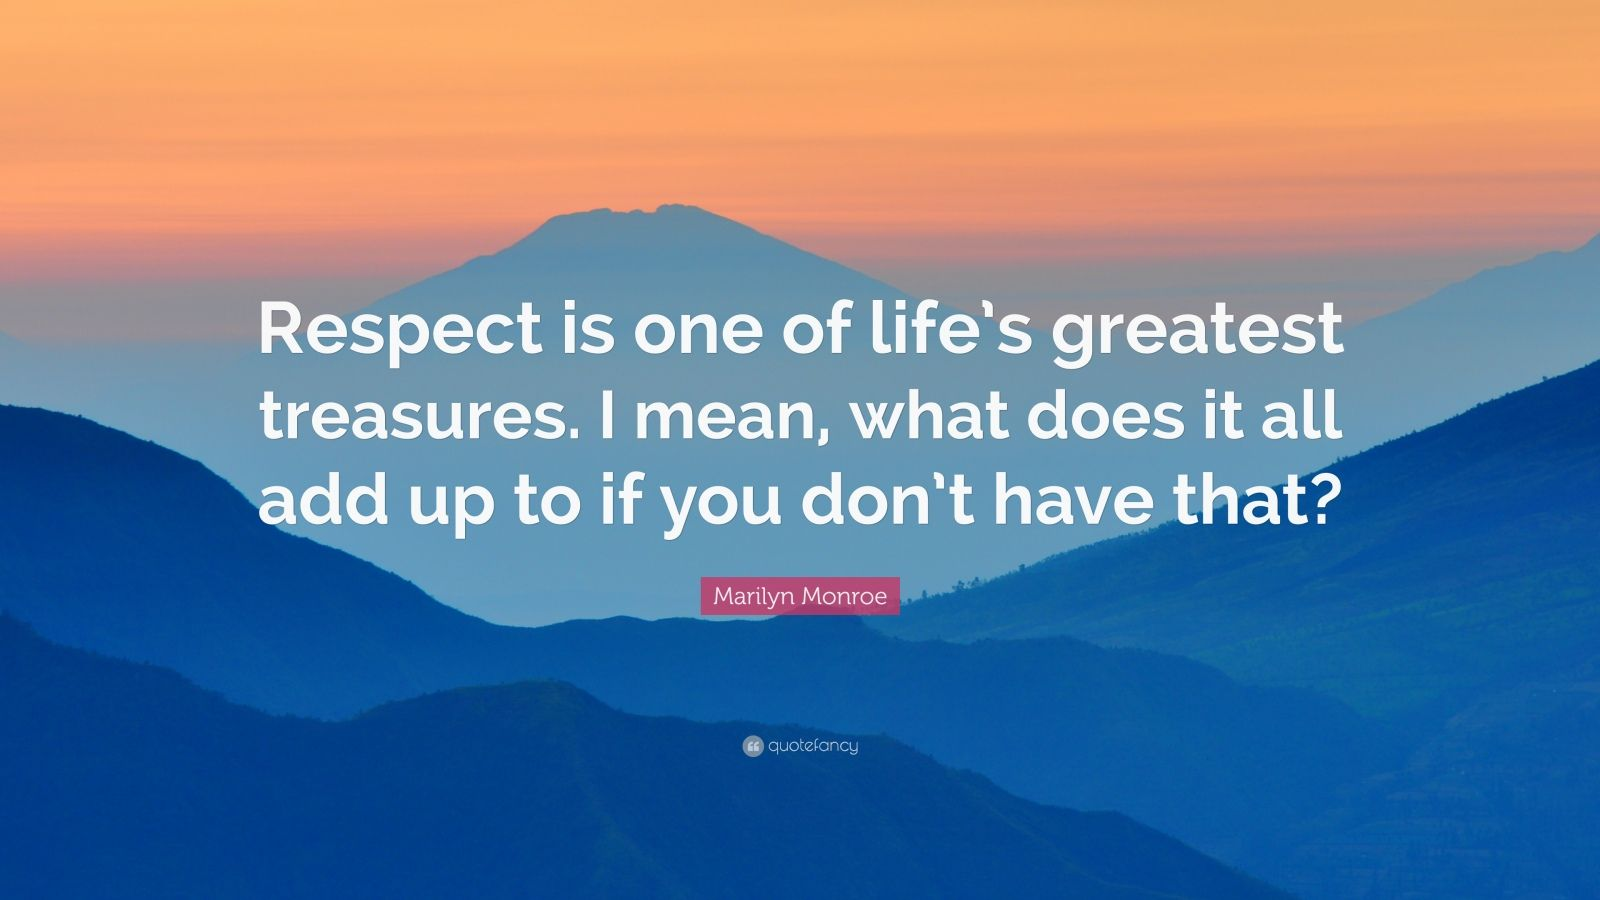 """Marilyn Monroe Quote: """"Respect is one of life's greatest treasures. I mean, what does it all add up to if you don't have that?"""""""